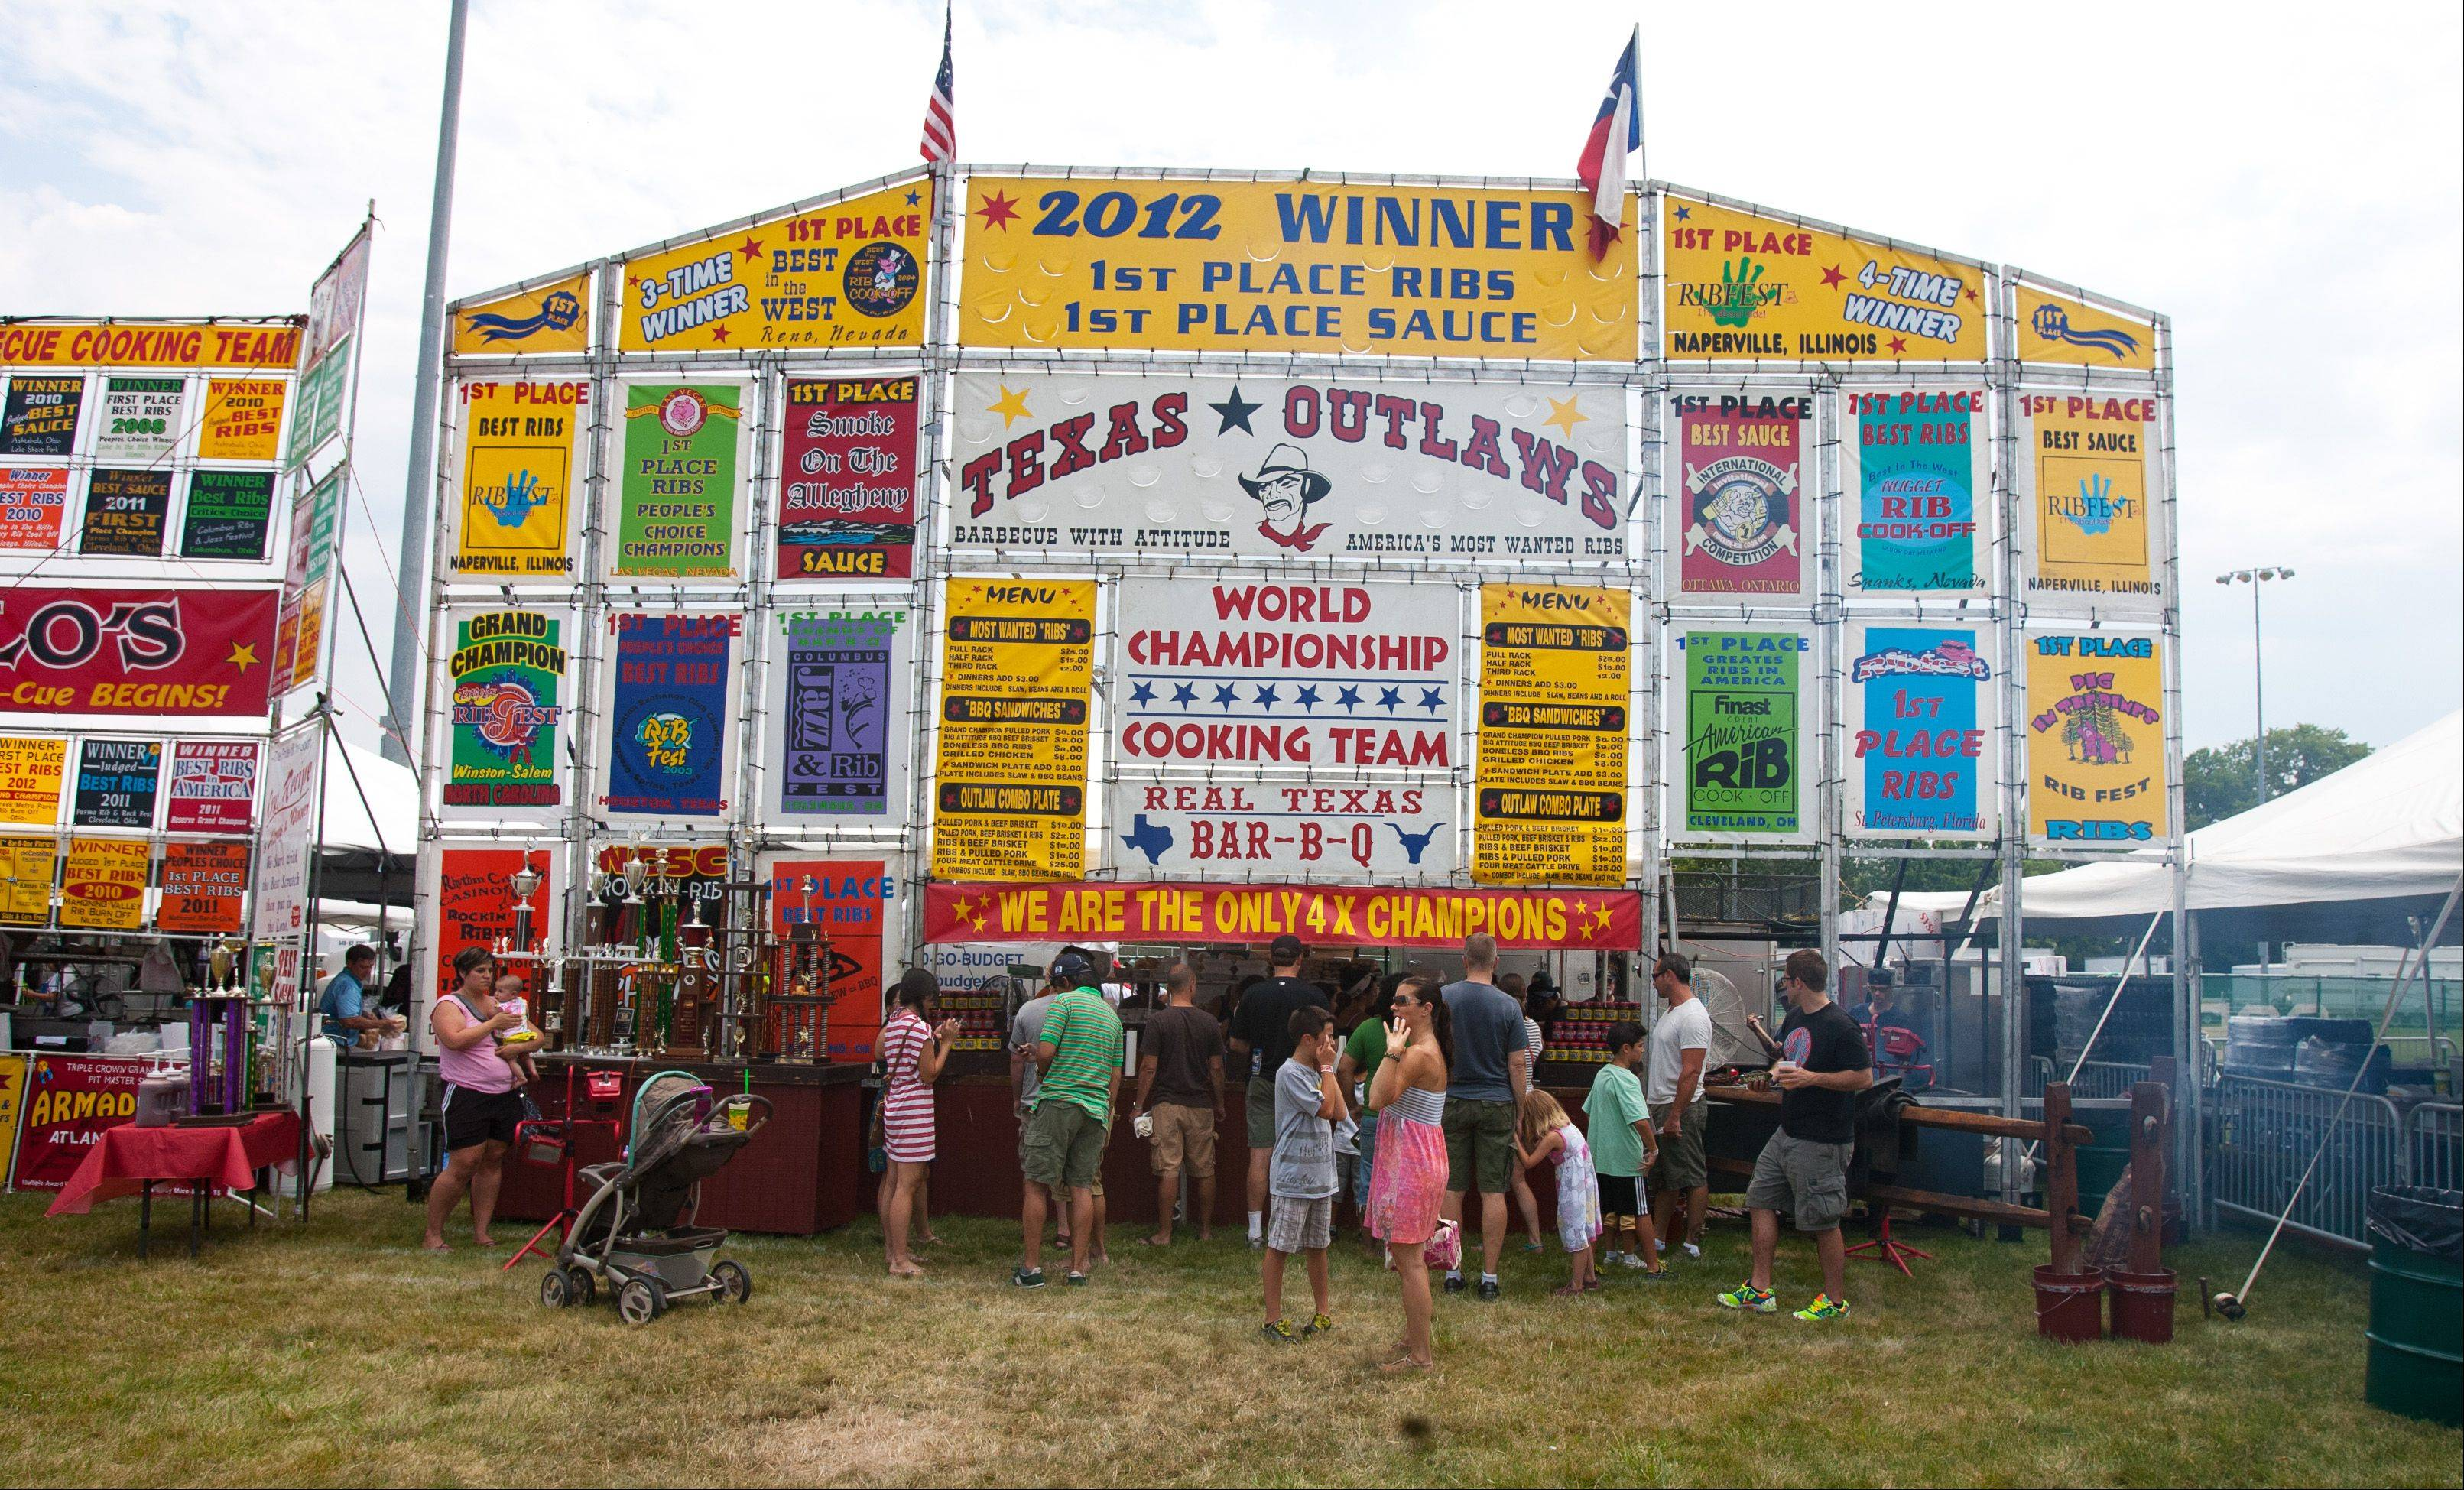 As Ribfest returns to Naperville's Knoch Park this week, families will find deals during Family Fun Time, which offers reduced adult admission and deals on meal prices from noon to 3 p.m. daily.